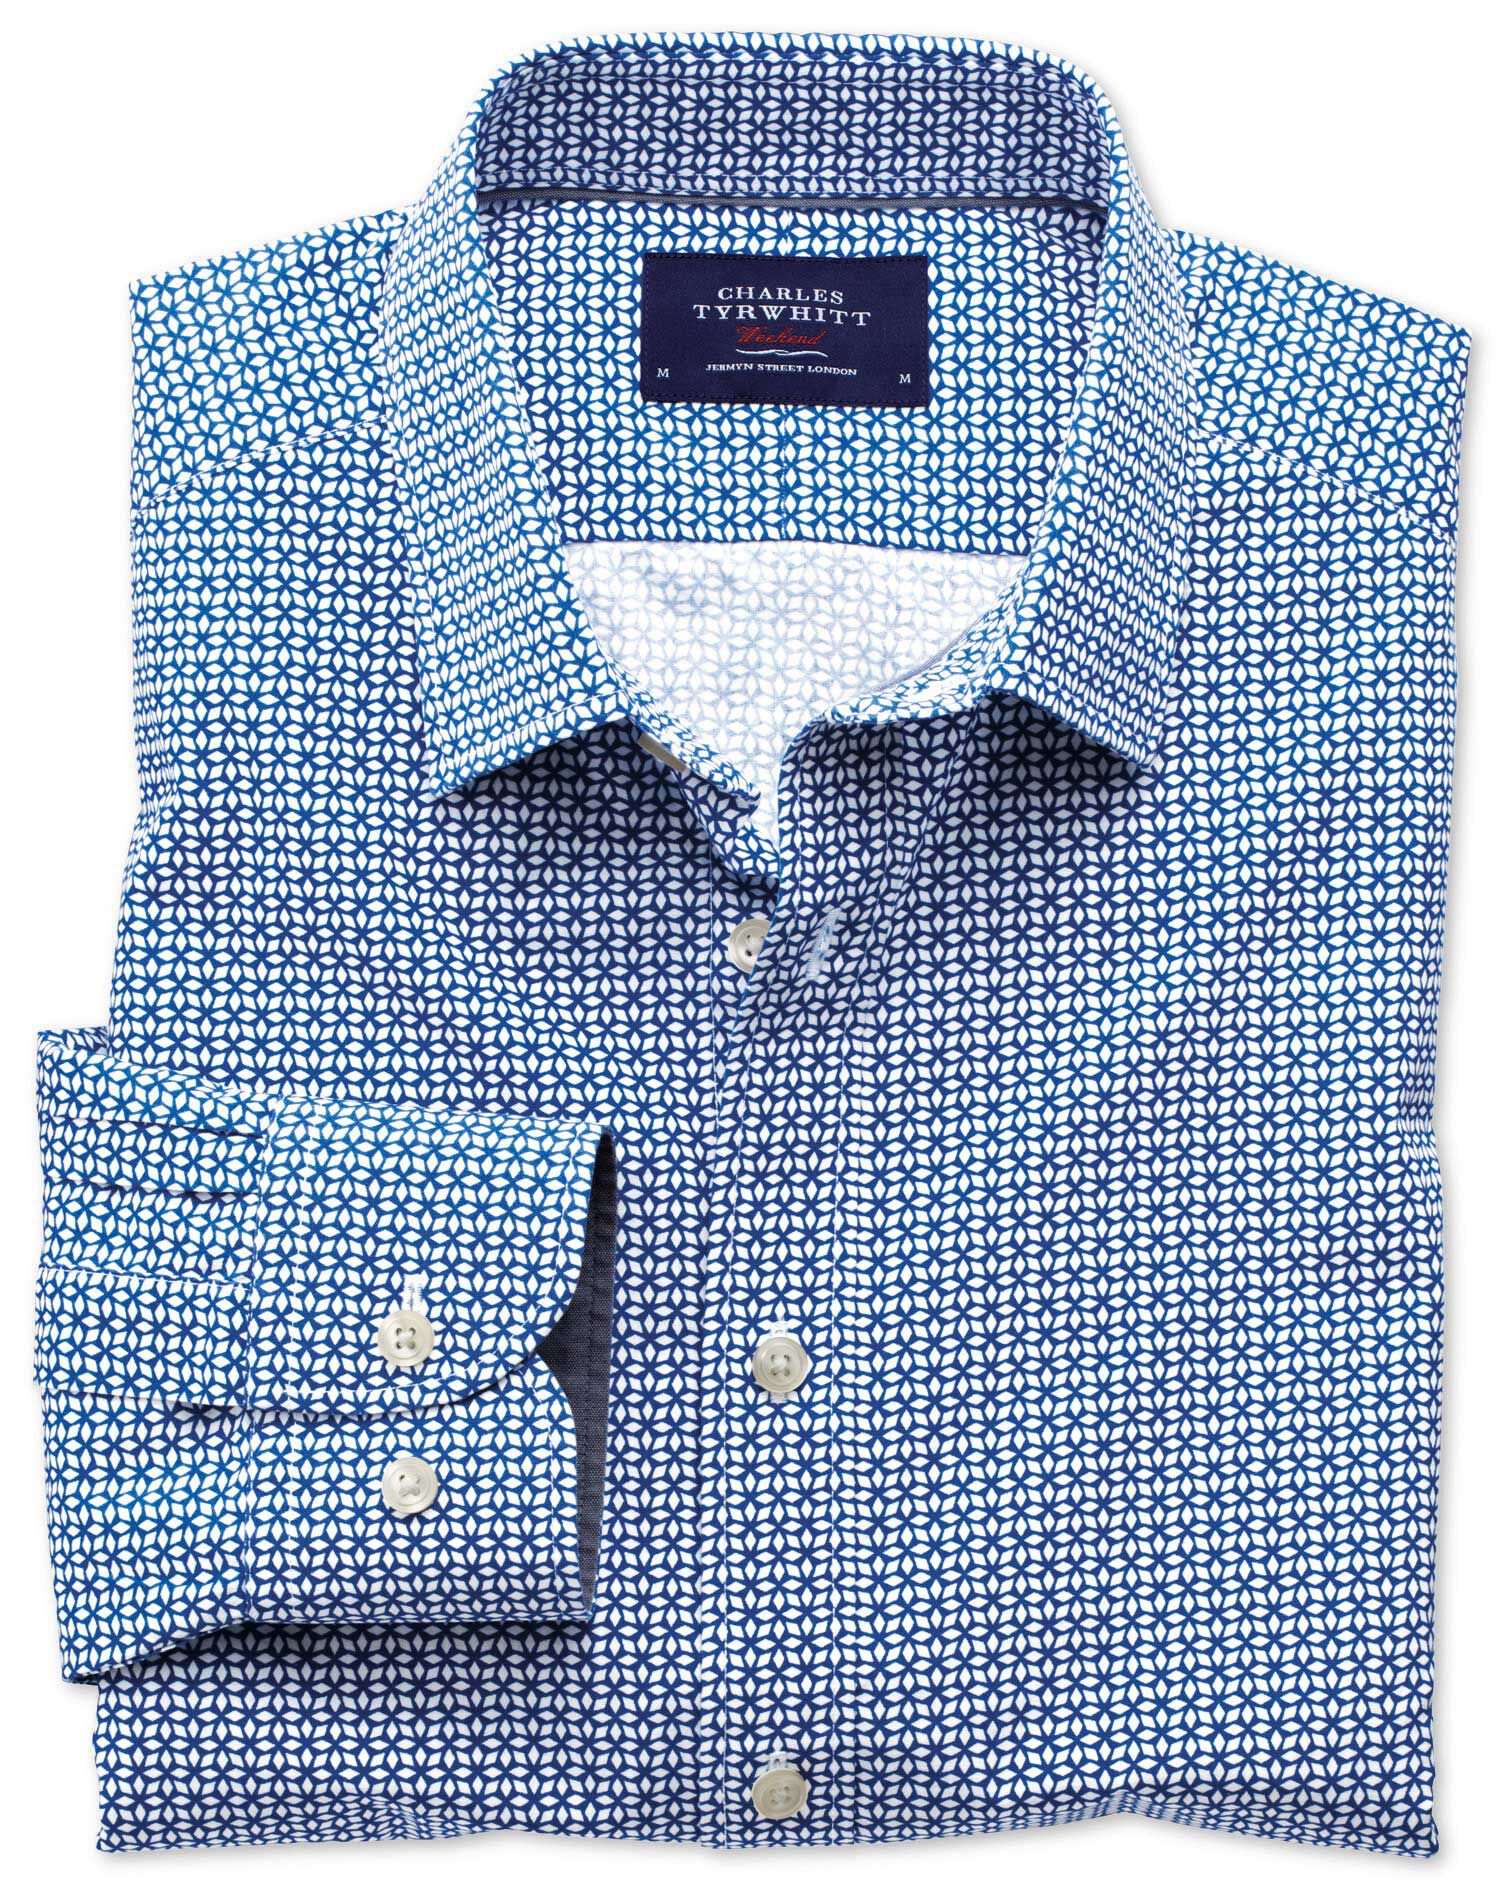 Classic Fit Royal and White Geometric Print Cotton Shirt Single Cuff Size Medium by Charles Tyrwhitt